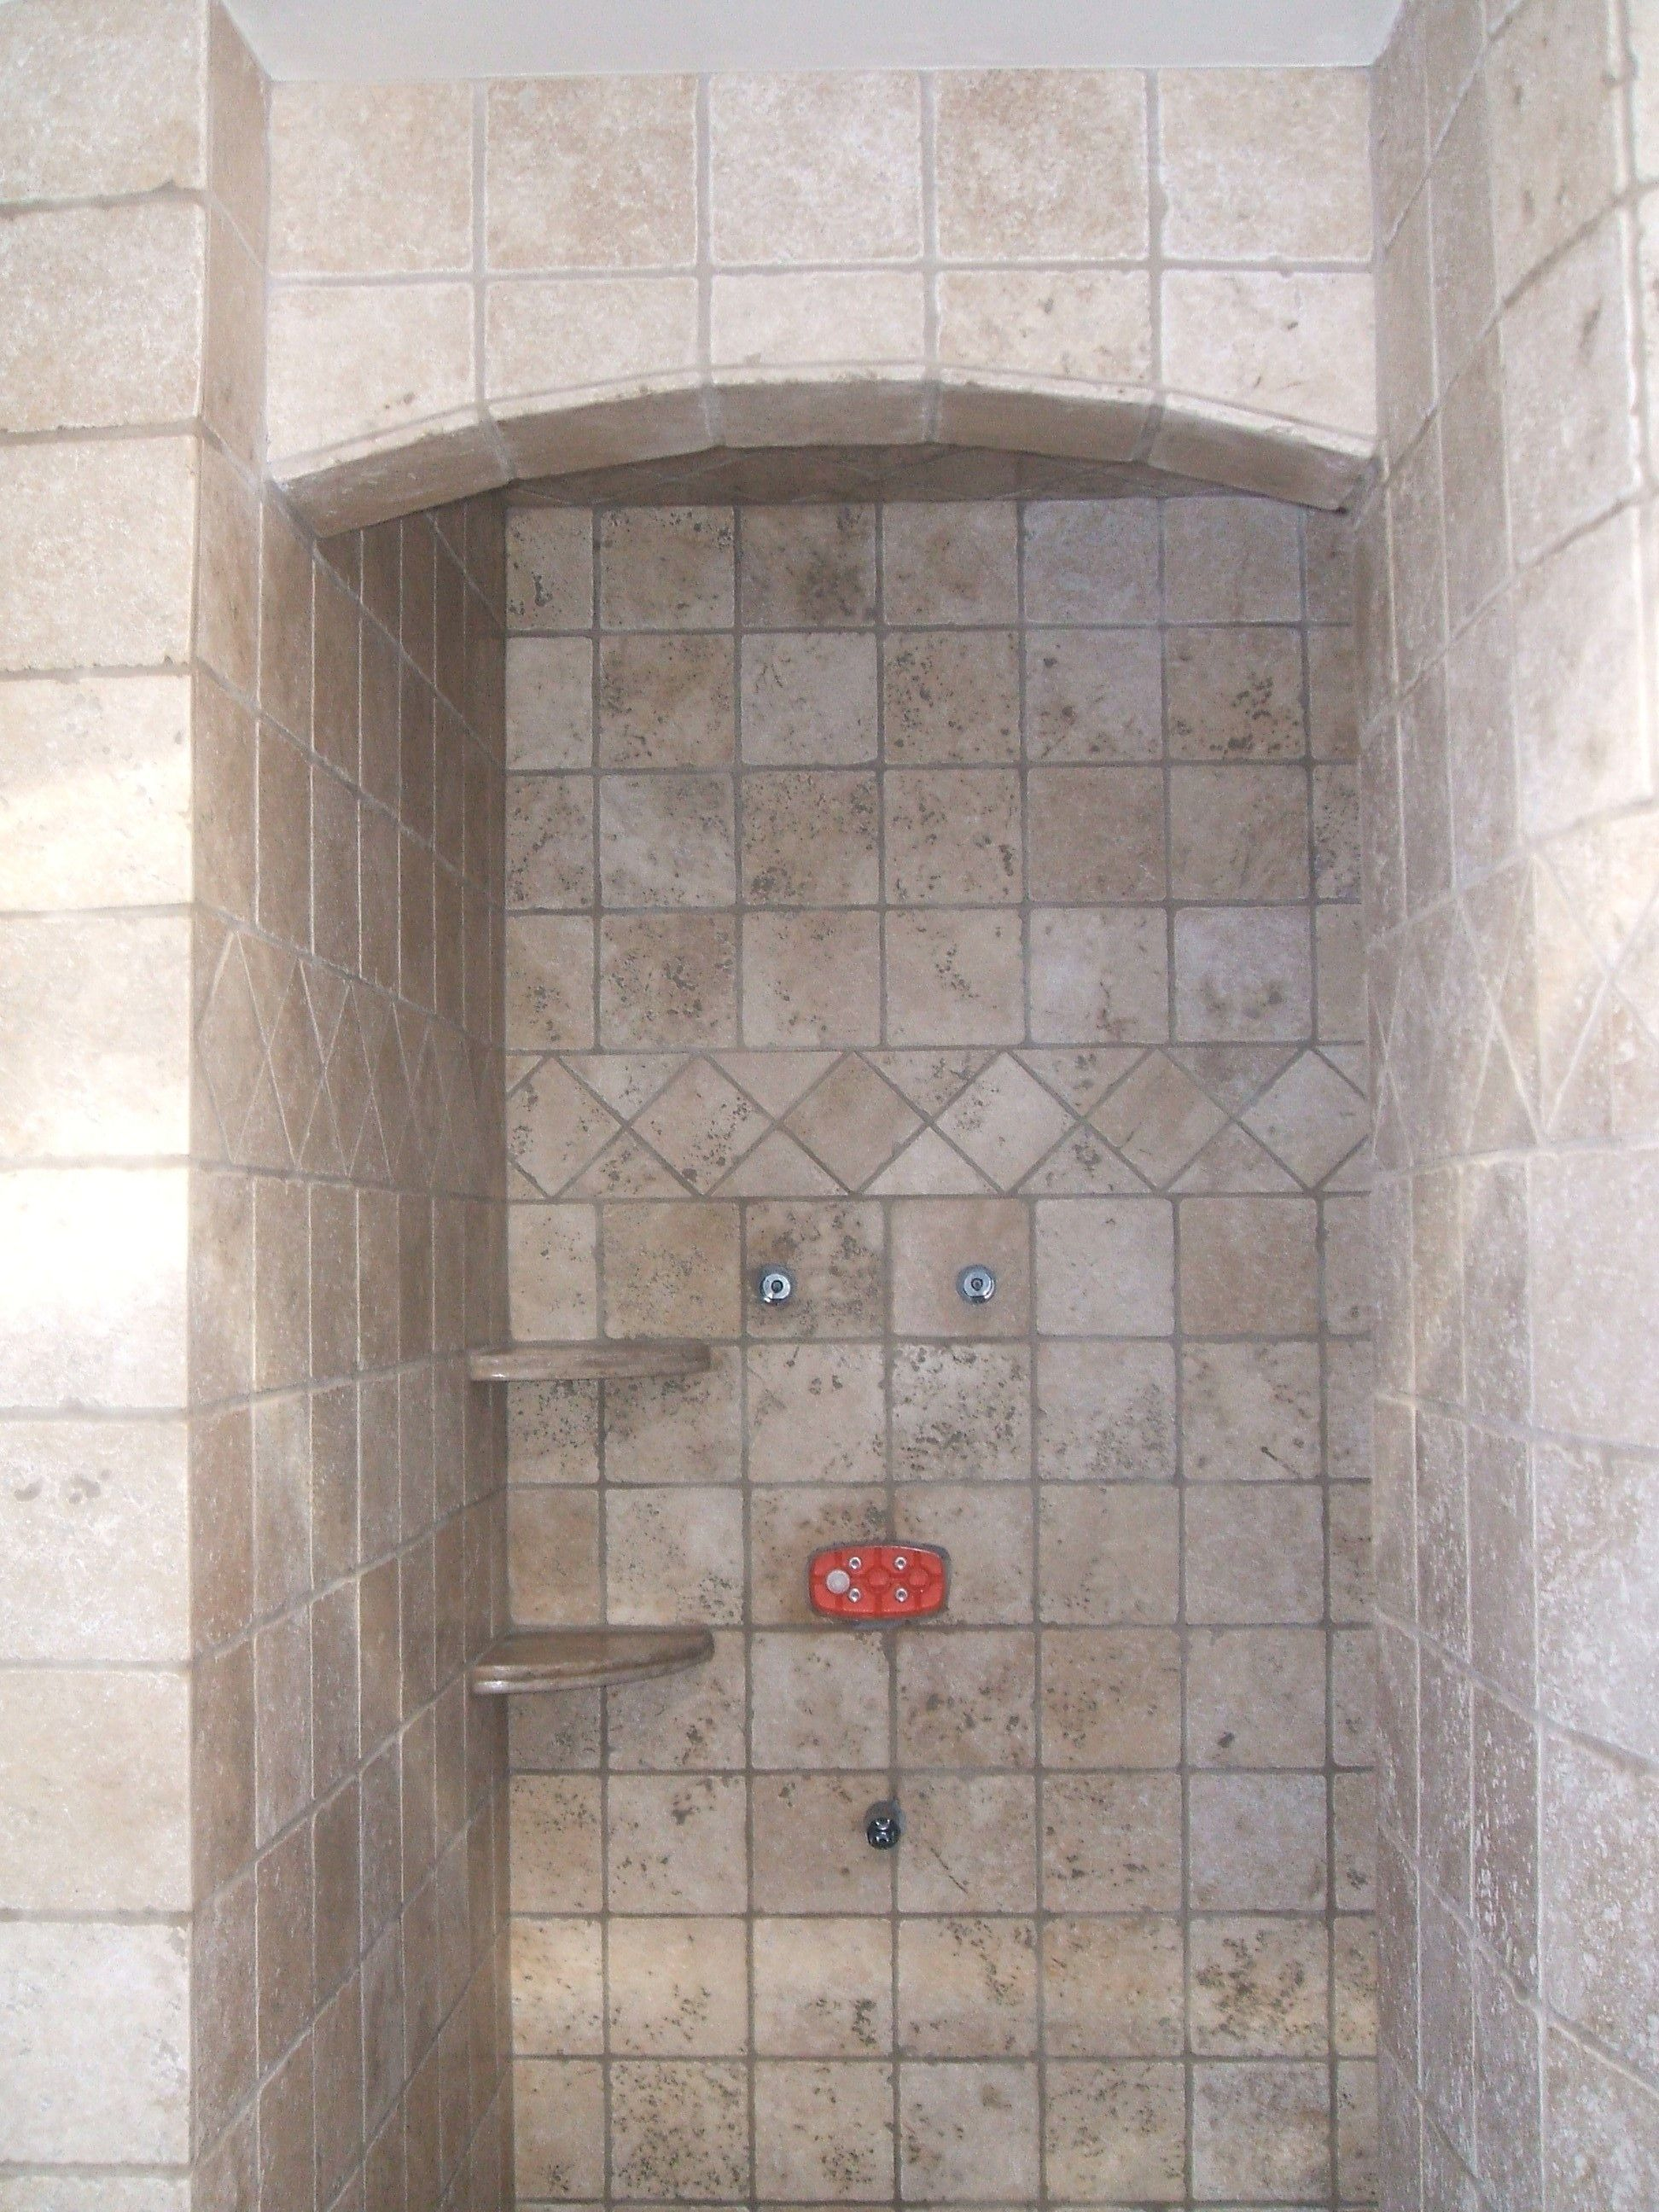 Terrific ceramic tile shower ideas small bathrooms with for Tiled bathroom designs pictures